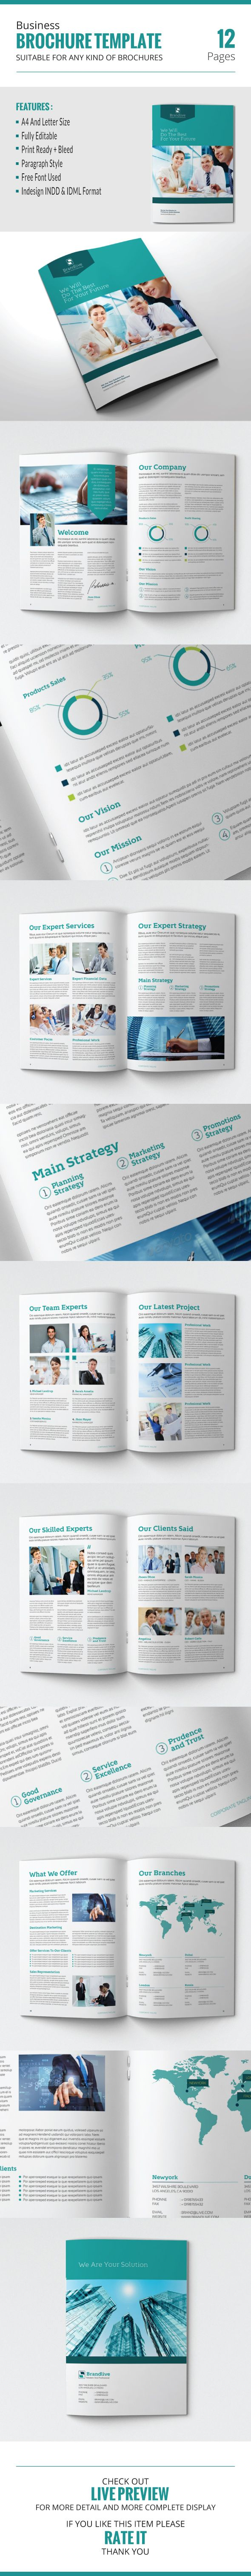 36 best book images on Pinterest | Brochure template, Editorial ...